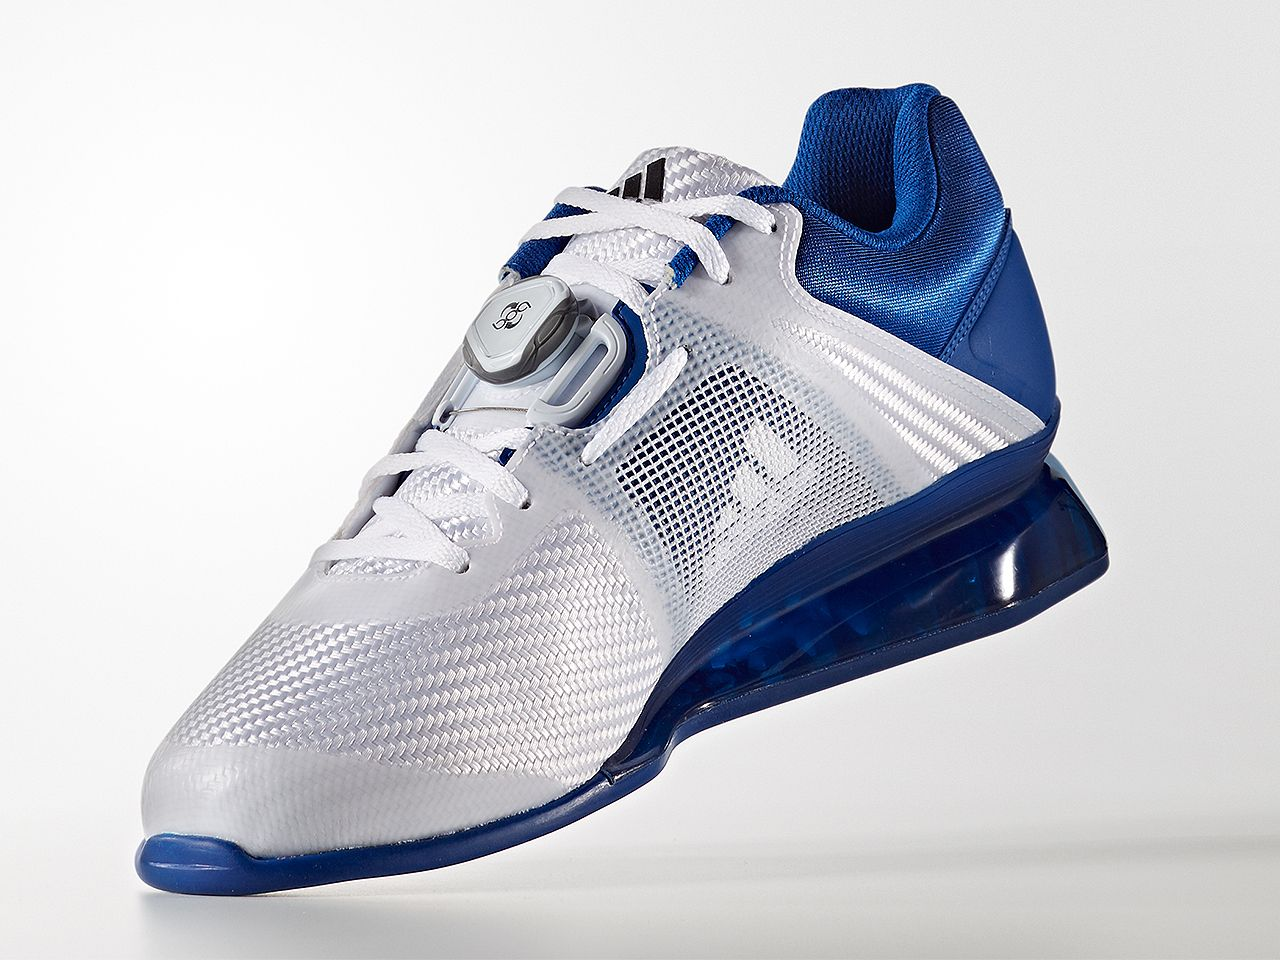 9c95cebd6716 Here s a close look at Adidas  Leistung 16.II and Crazy Power training shoes